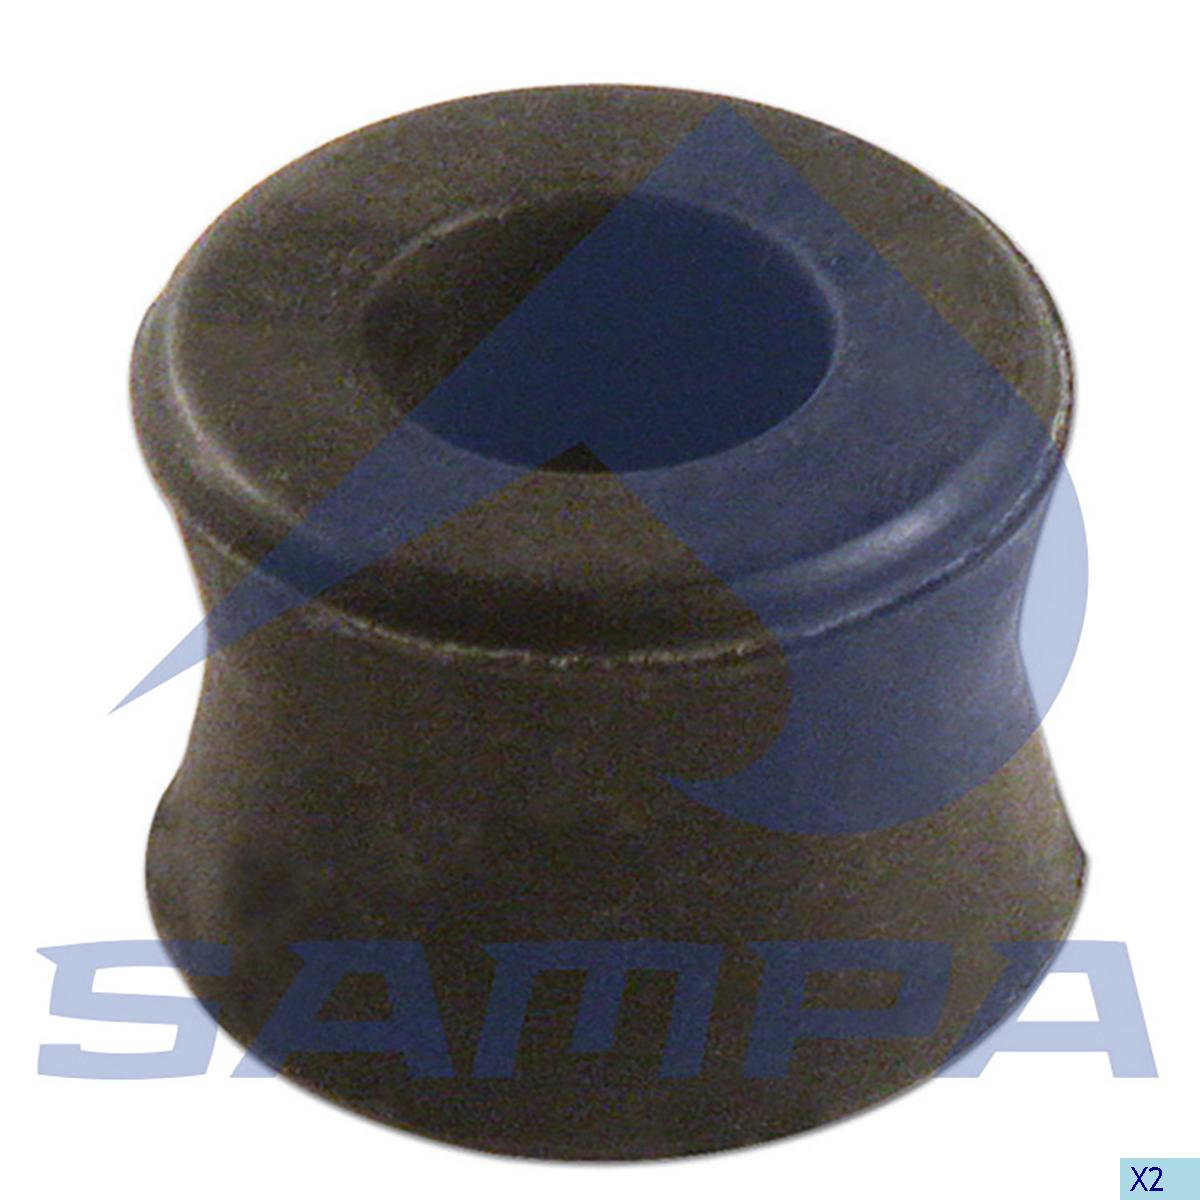 Rubber Bushing, Shock Absorber, Iveco, Suspension